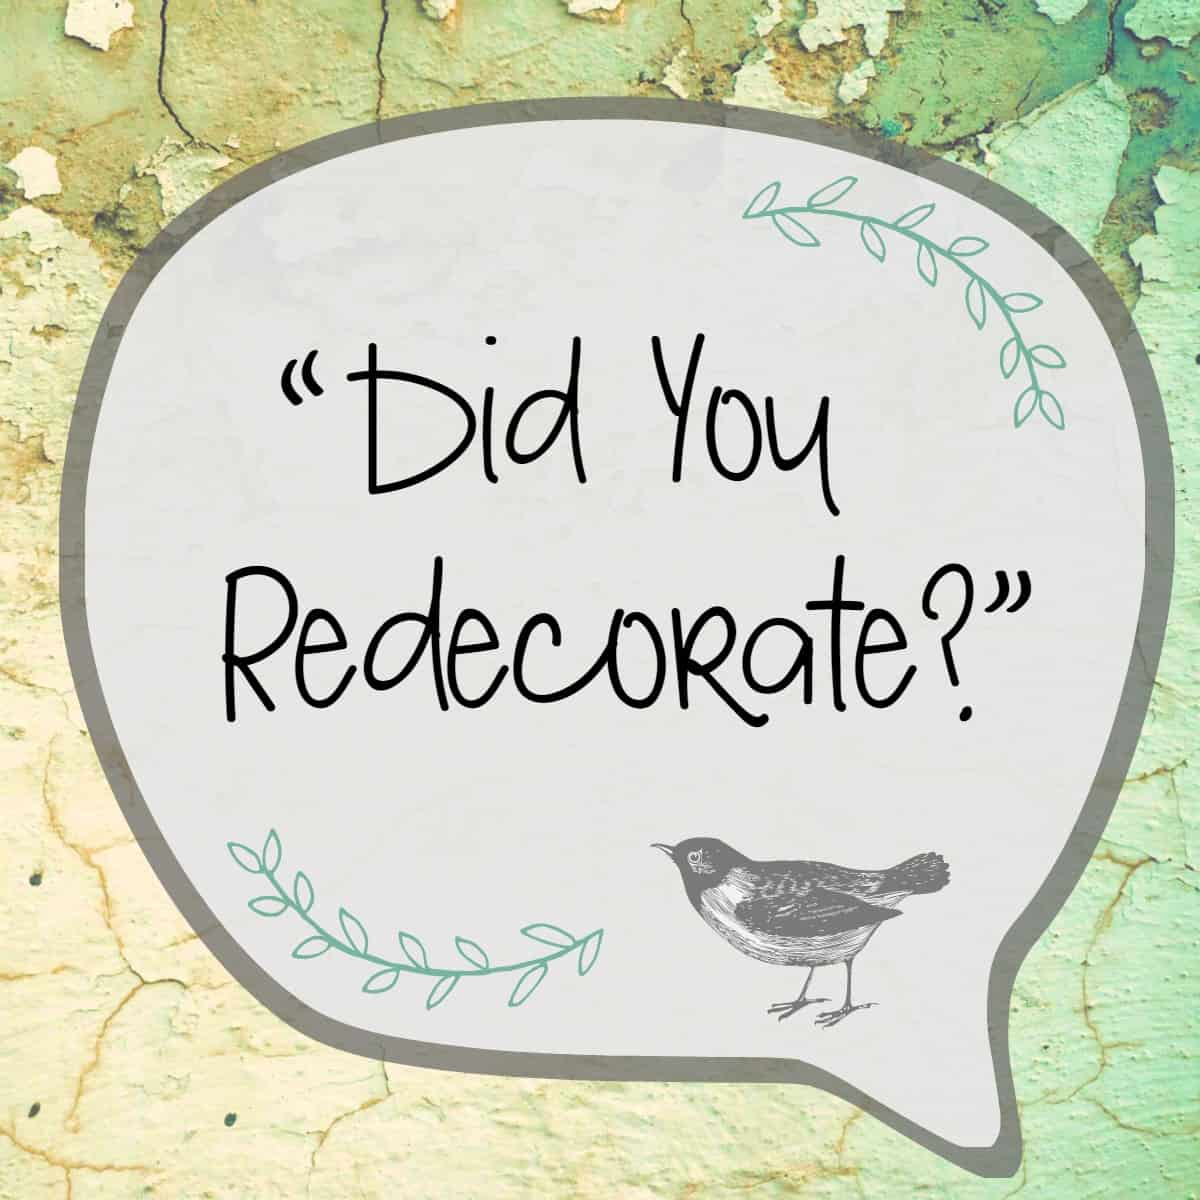 Did You Redecorate?